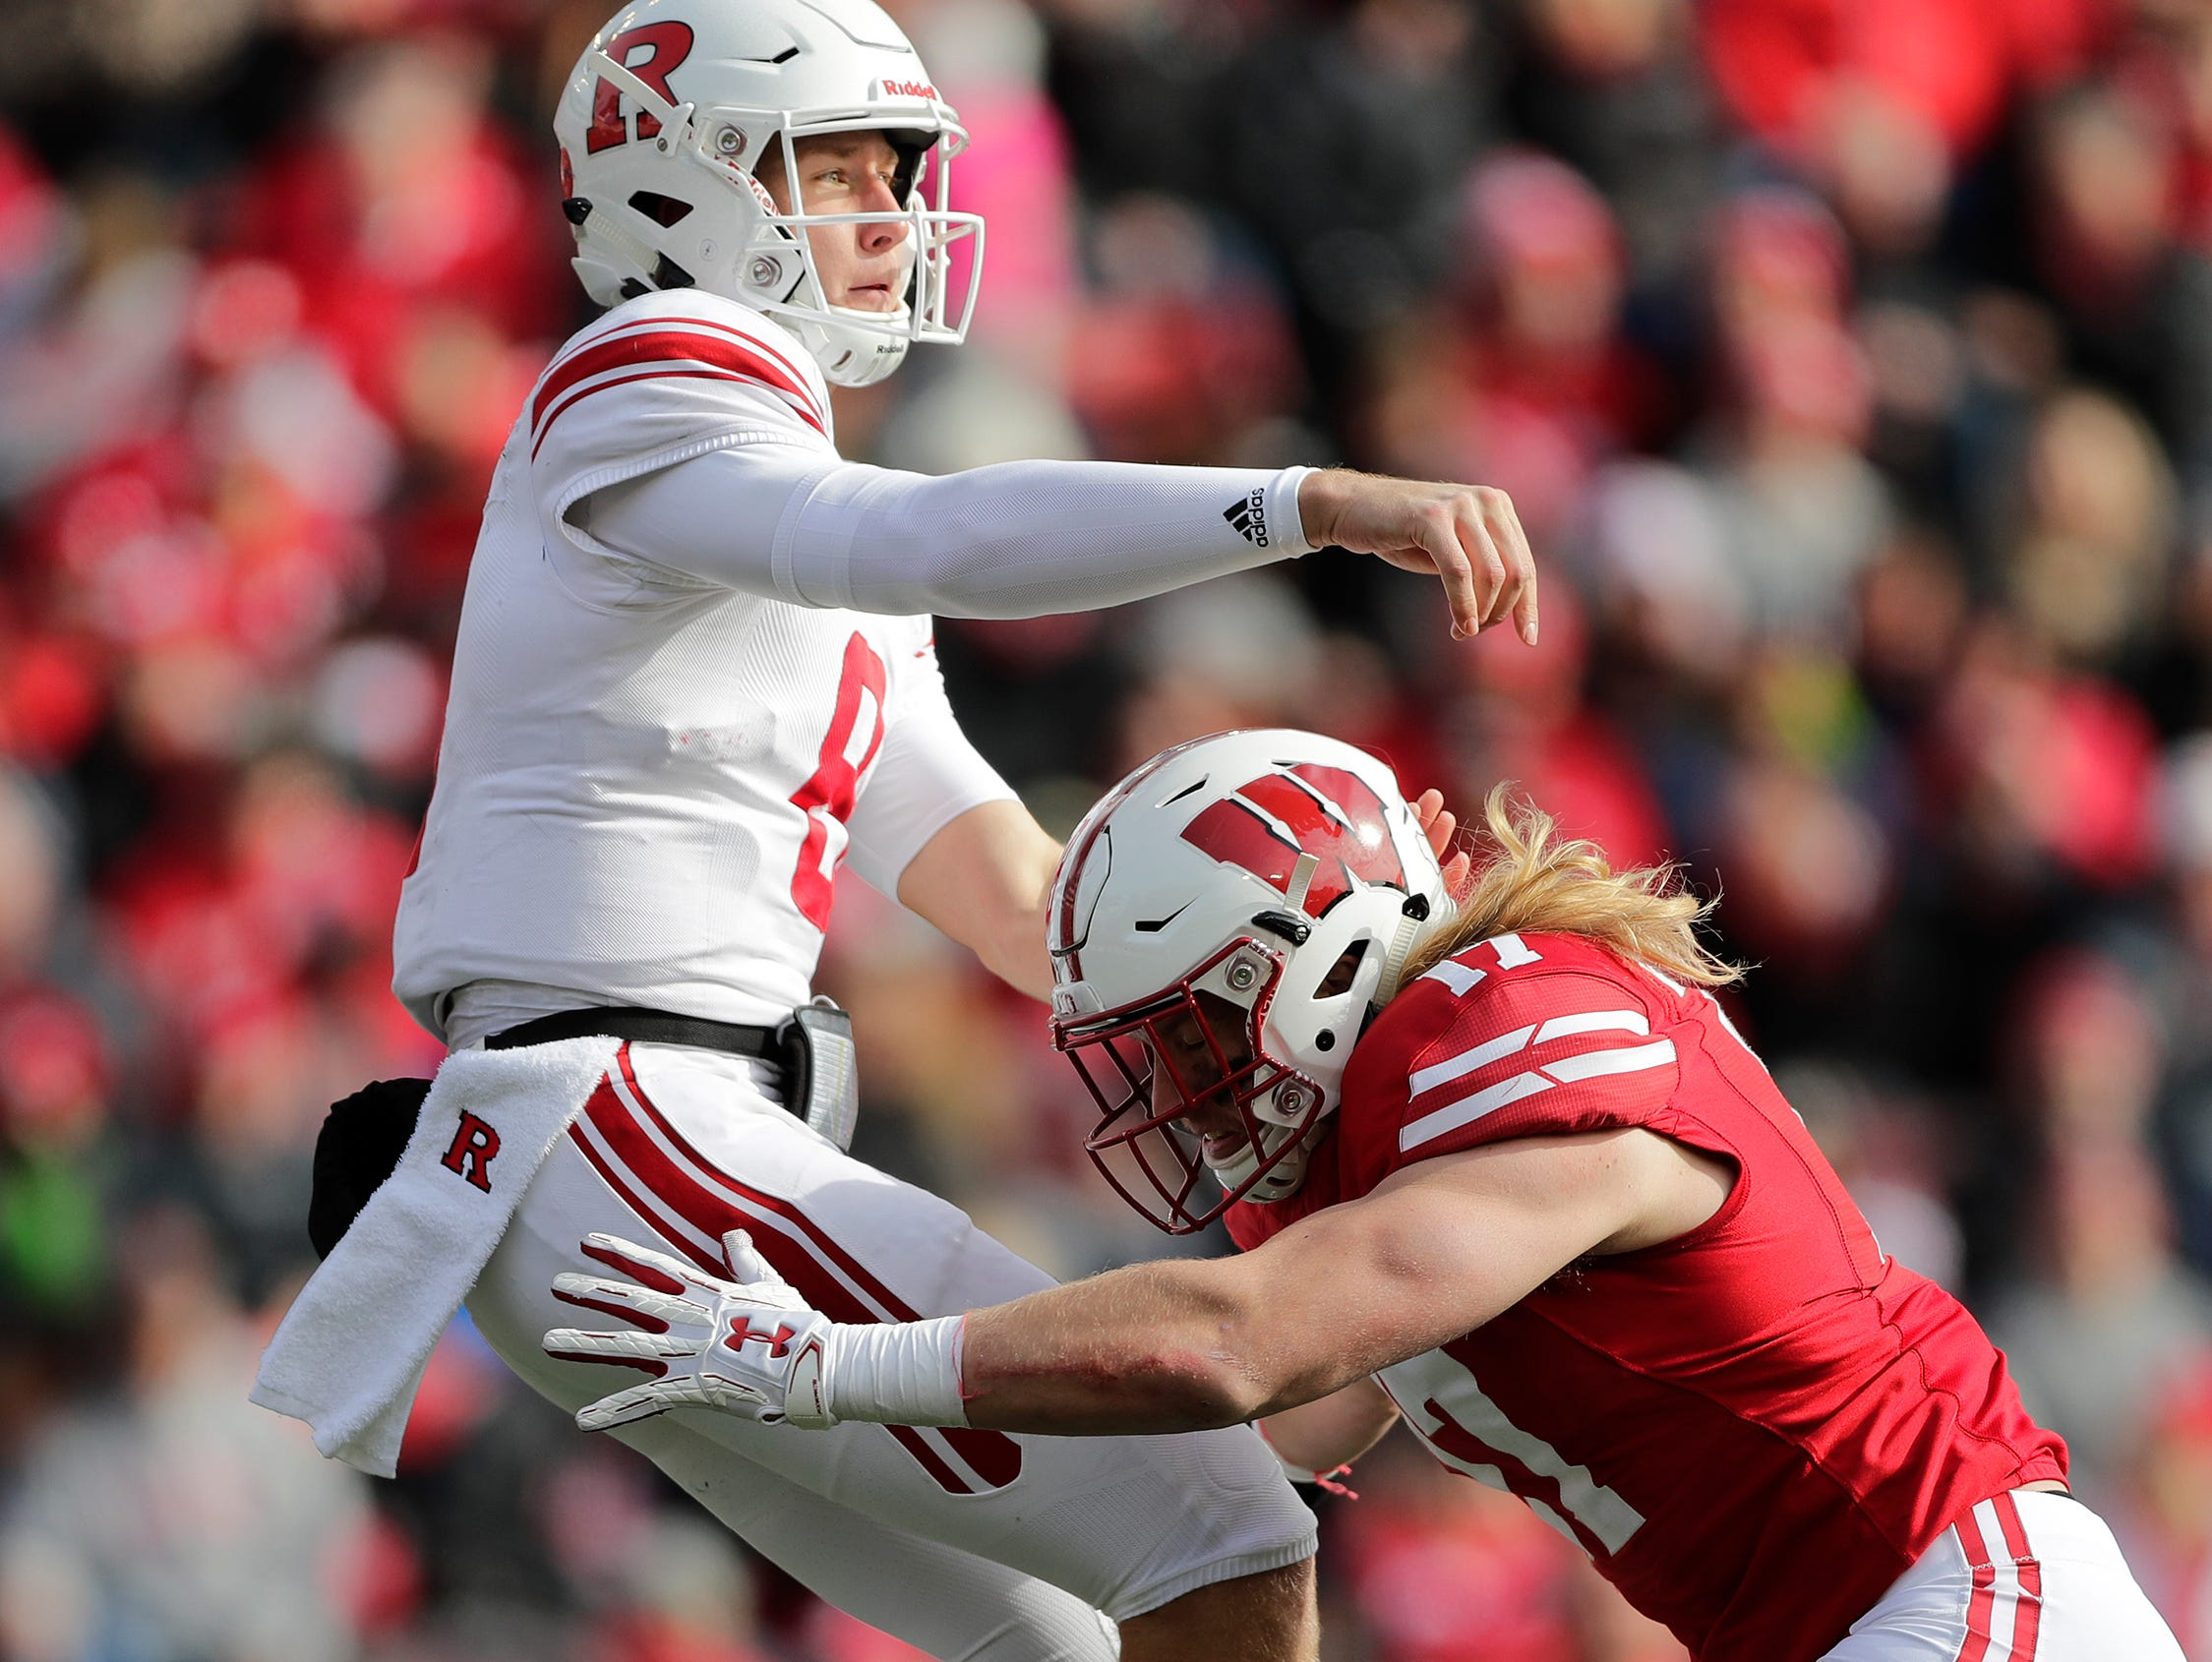 Wisconsin Badgers linebacker Andrew Van Ginkel (17) pressures Rutgers Scarlet Knights quarterback Artur Sitkowski (8) in the third quarter of a Big Ten football game at Camp Randall Stadium on Saturday, November 3, 2018 in Madison, Wis.Adam Wesley/USA TODAY NETWORK-Wisconsin